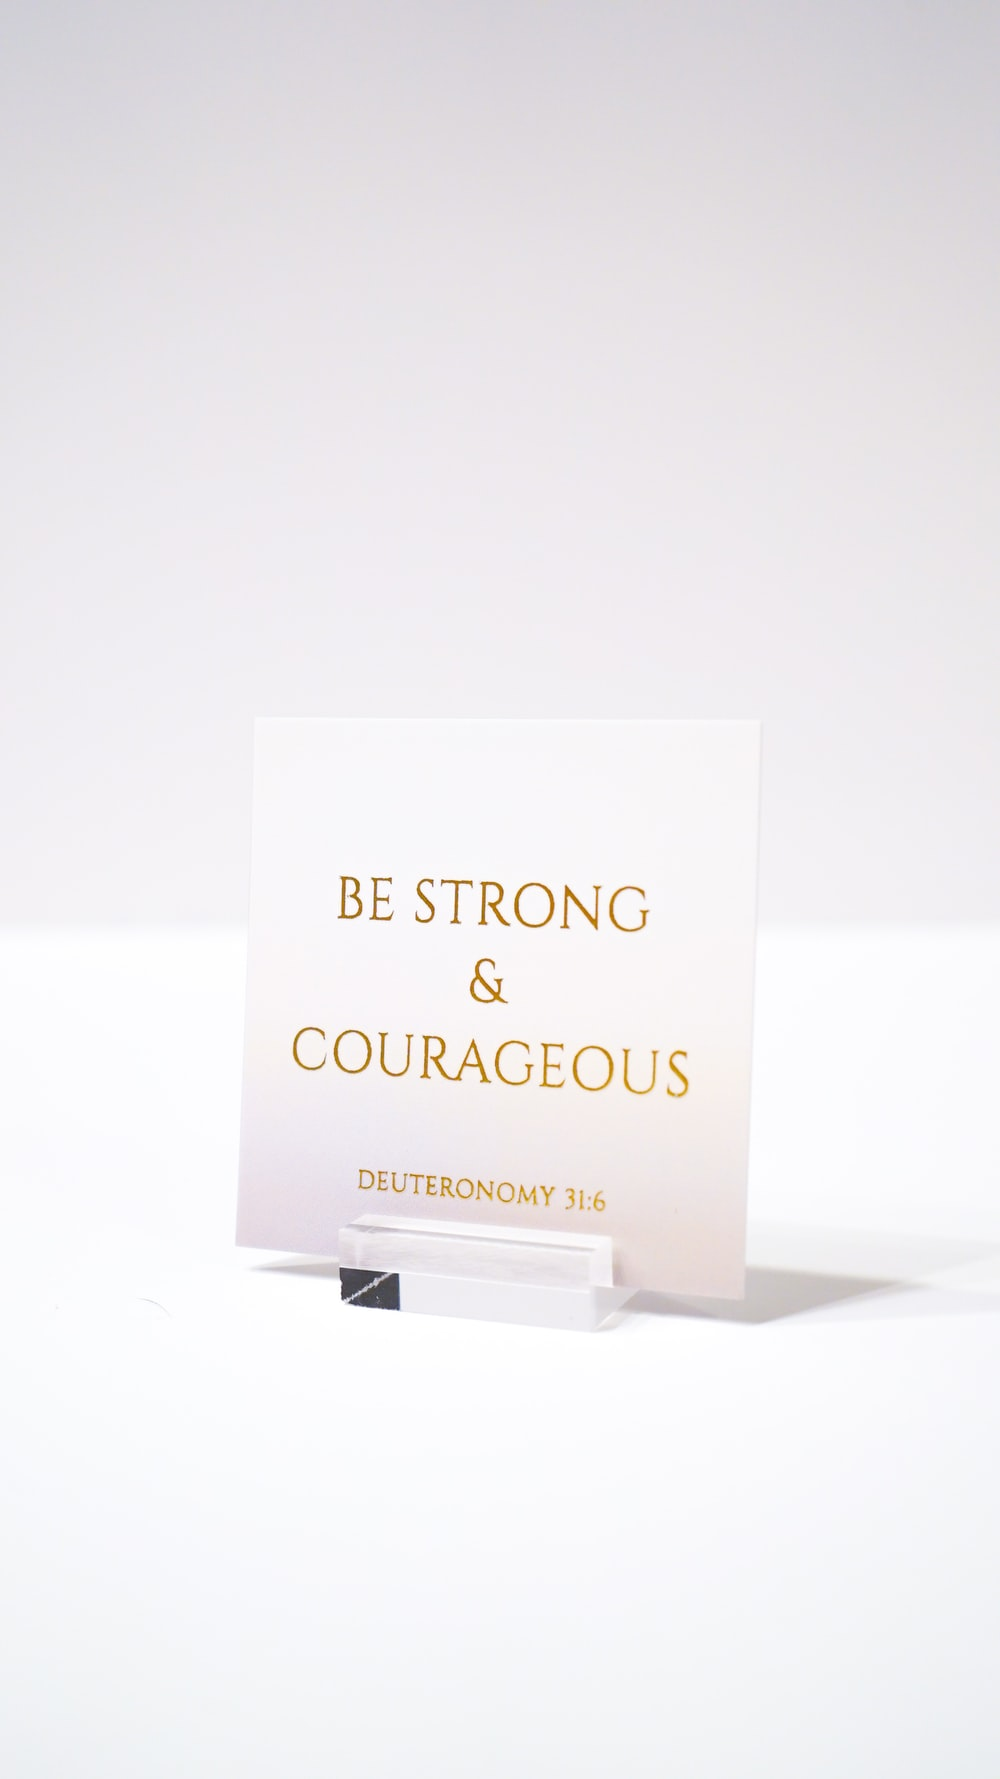 white paper with be strong and courageous printed text